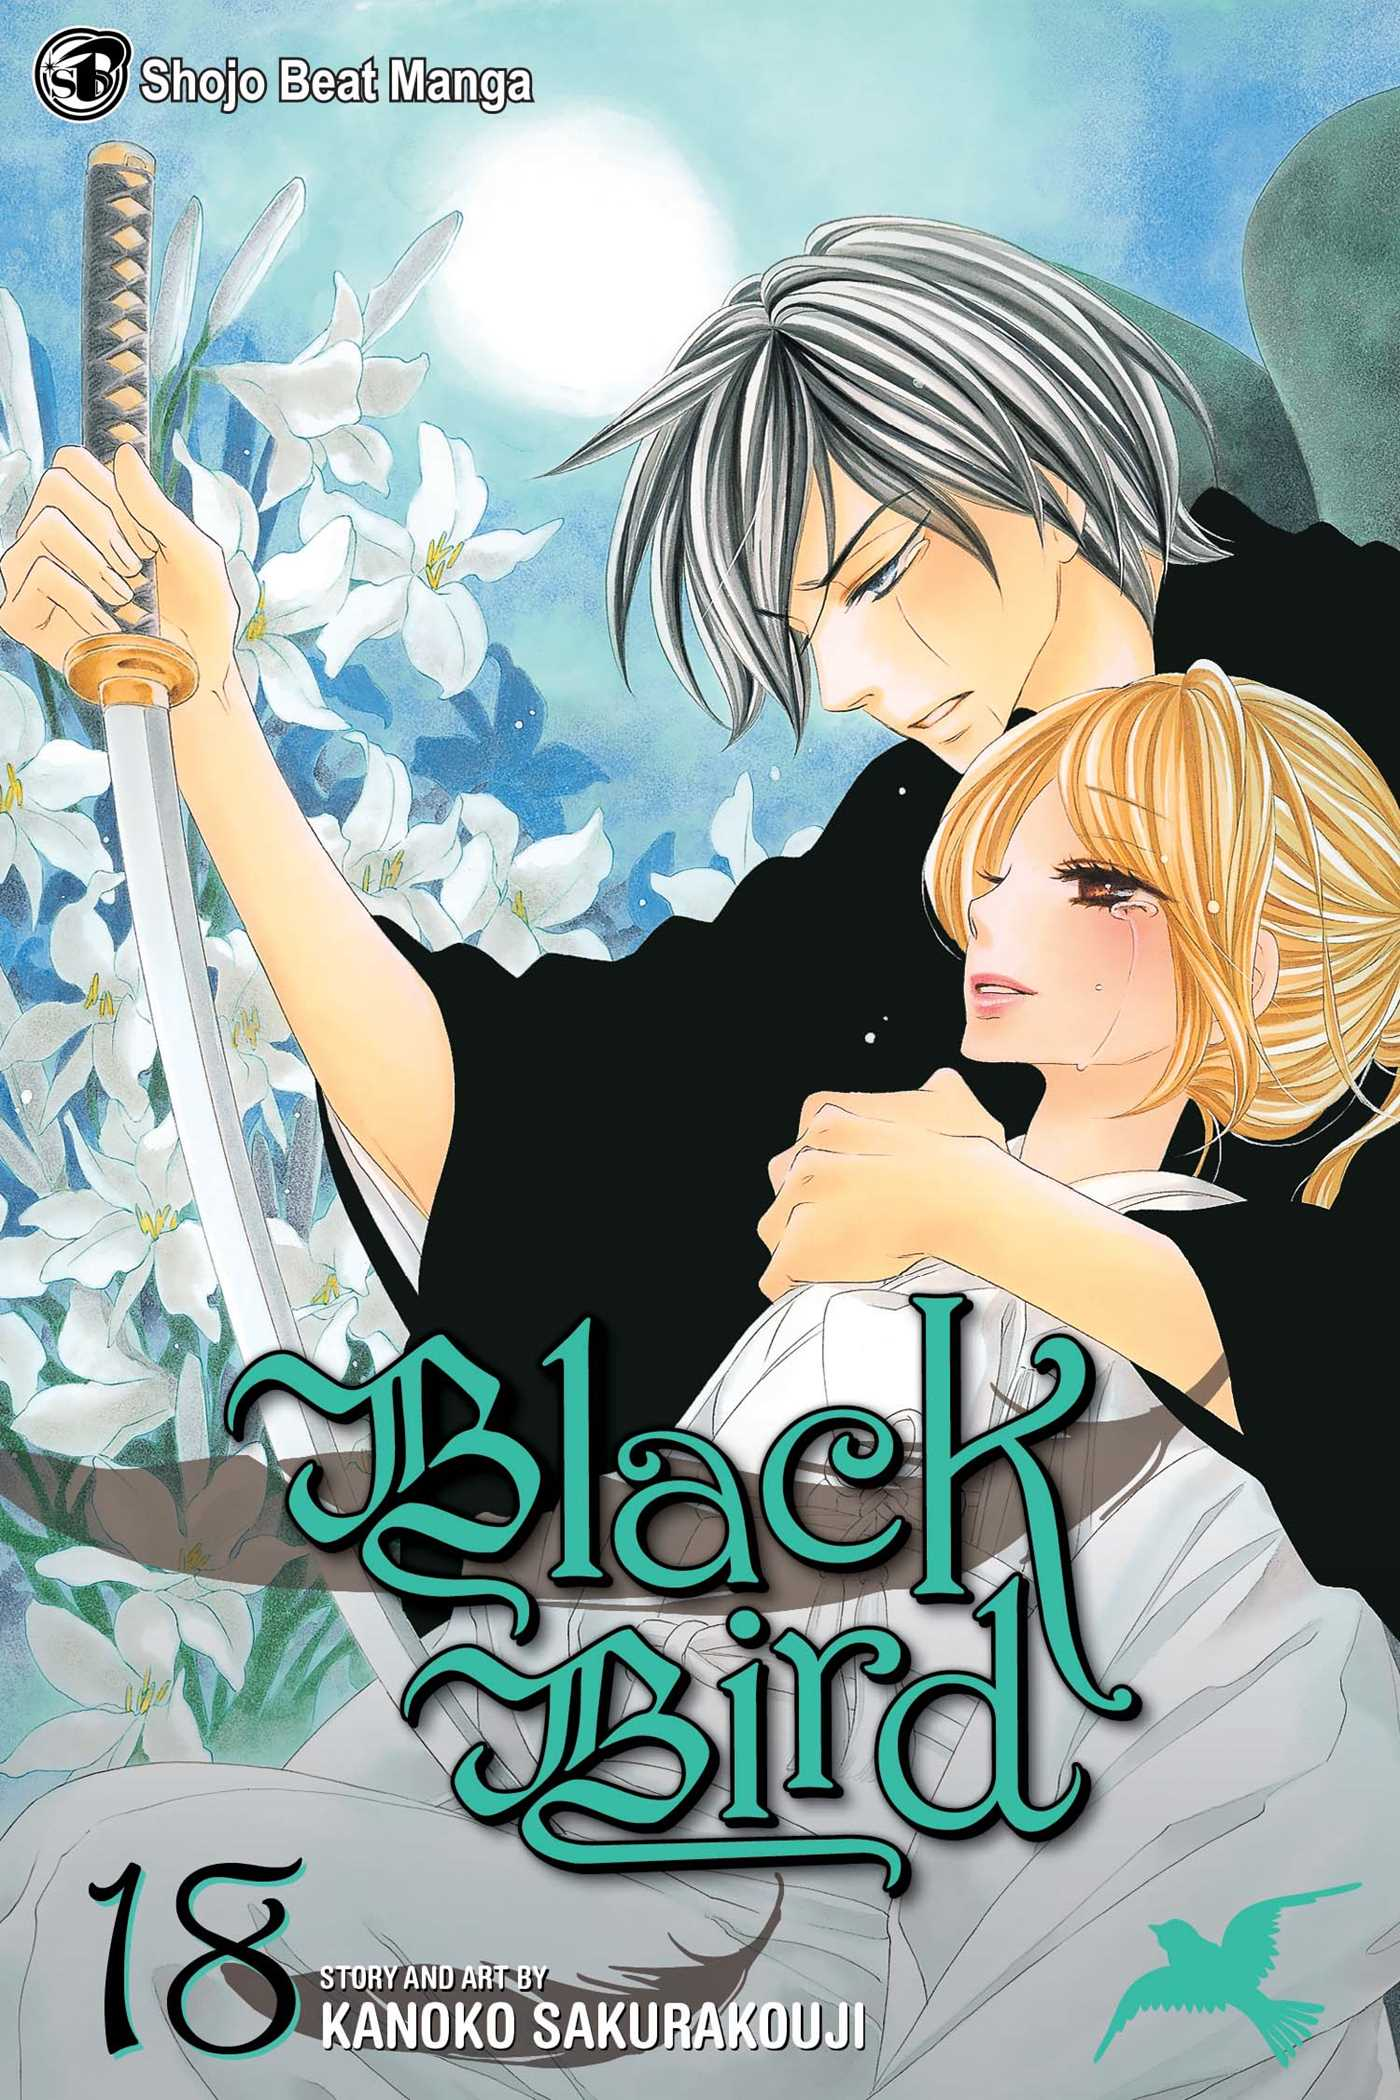 Black bird vol 18 9781421560090 hr